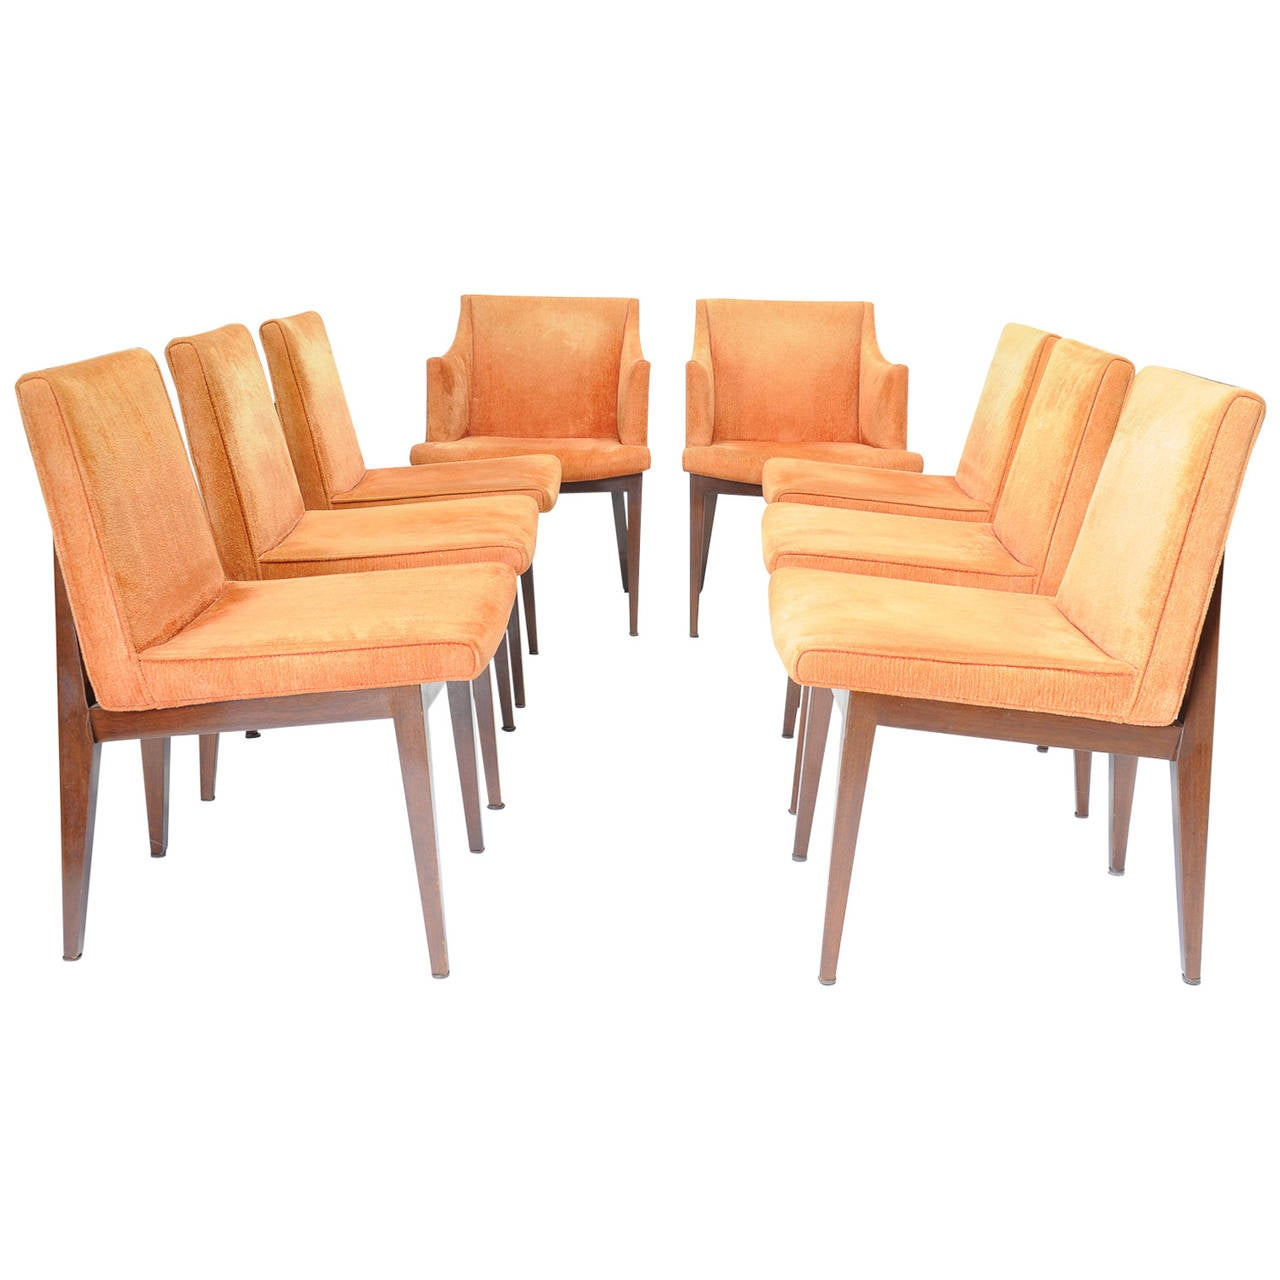 Good Set Of Eight Edward Wormley Dining Chairs For Dunbar Furniture Company 1